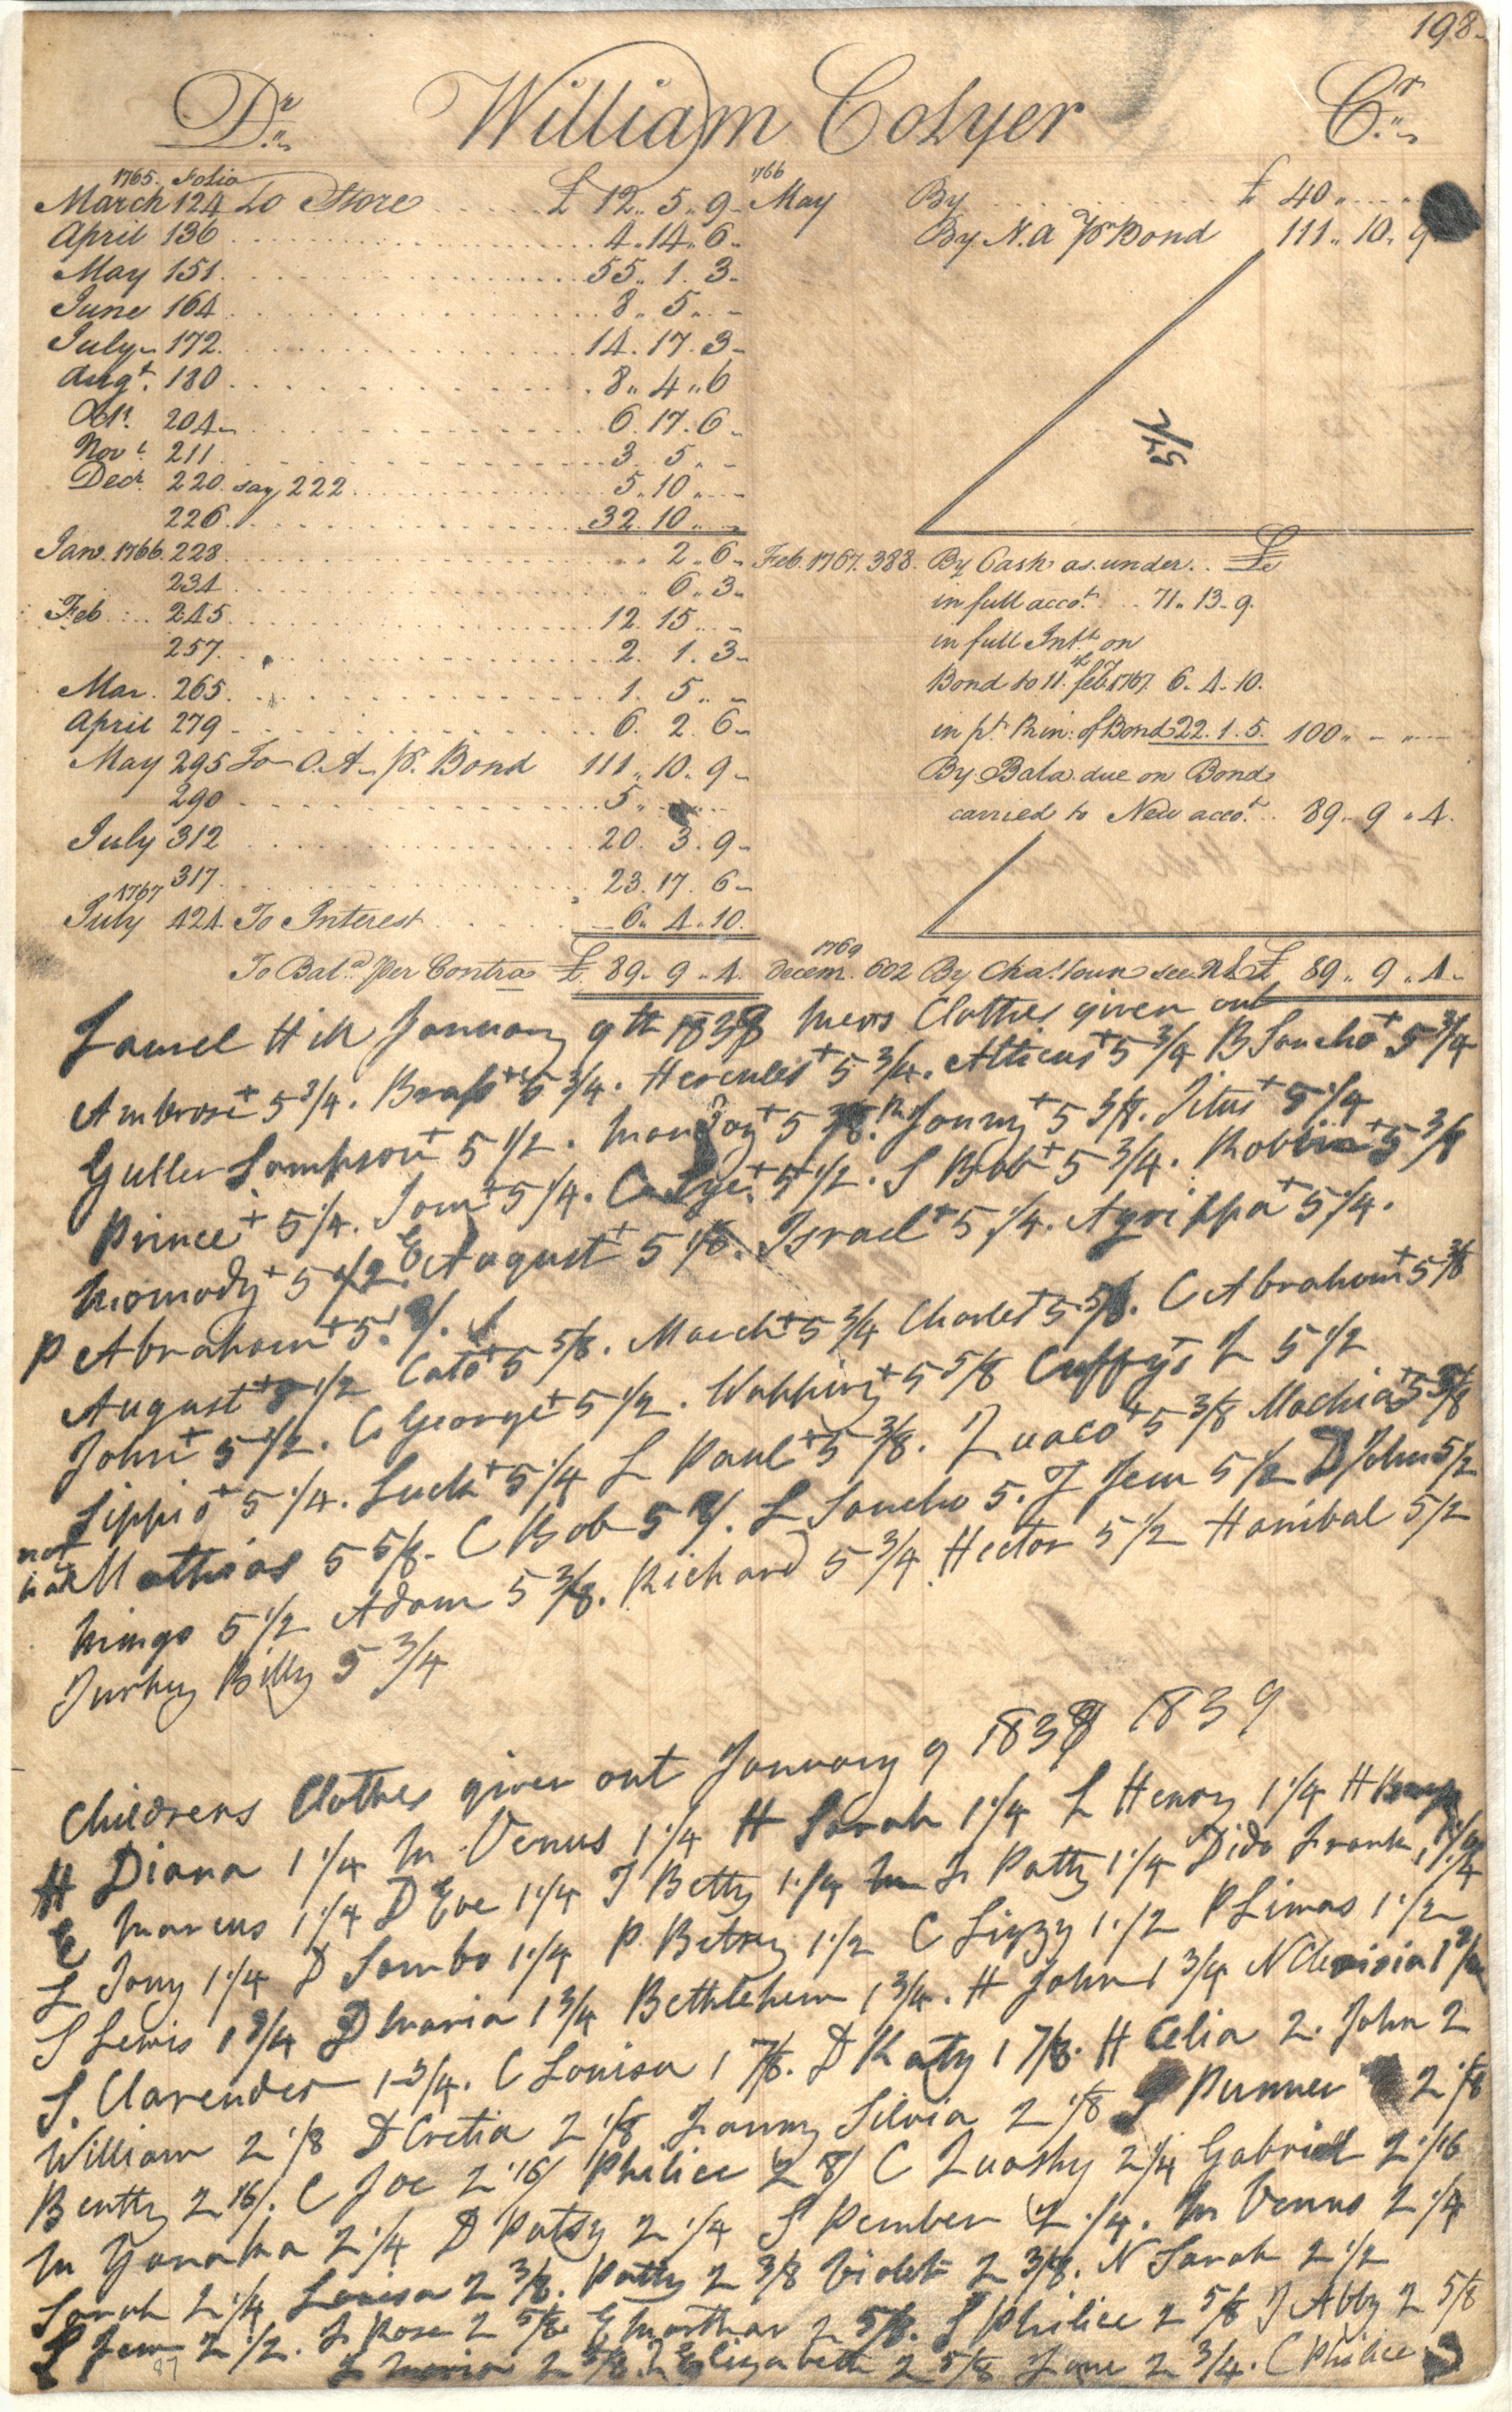 Plowden Weston's Business Ledger, page 198